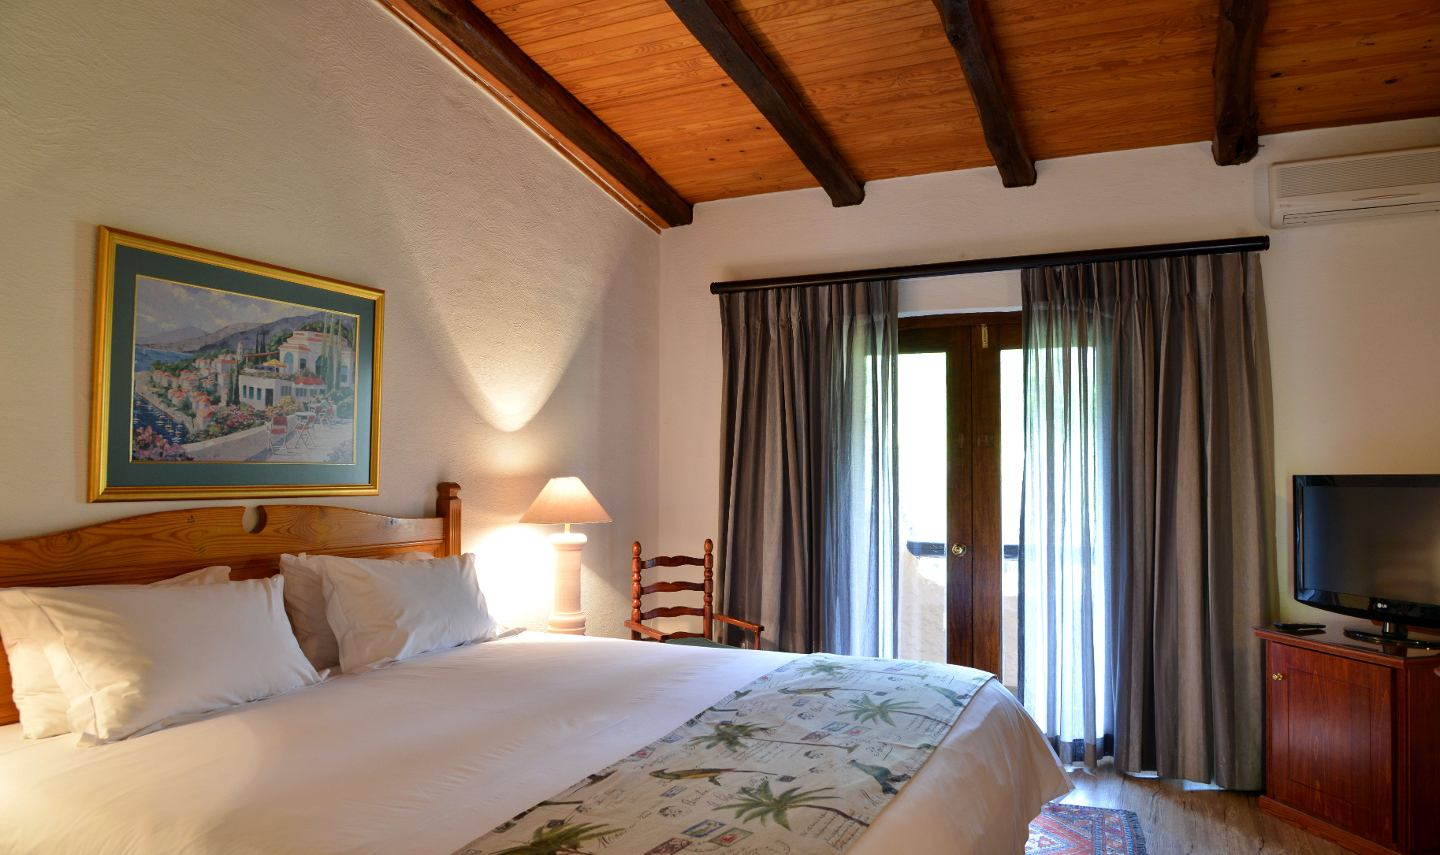 Malaga Hotel Waterval Boven South Africa